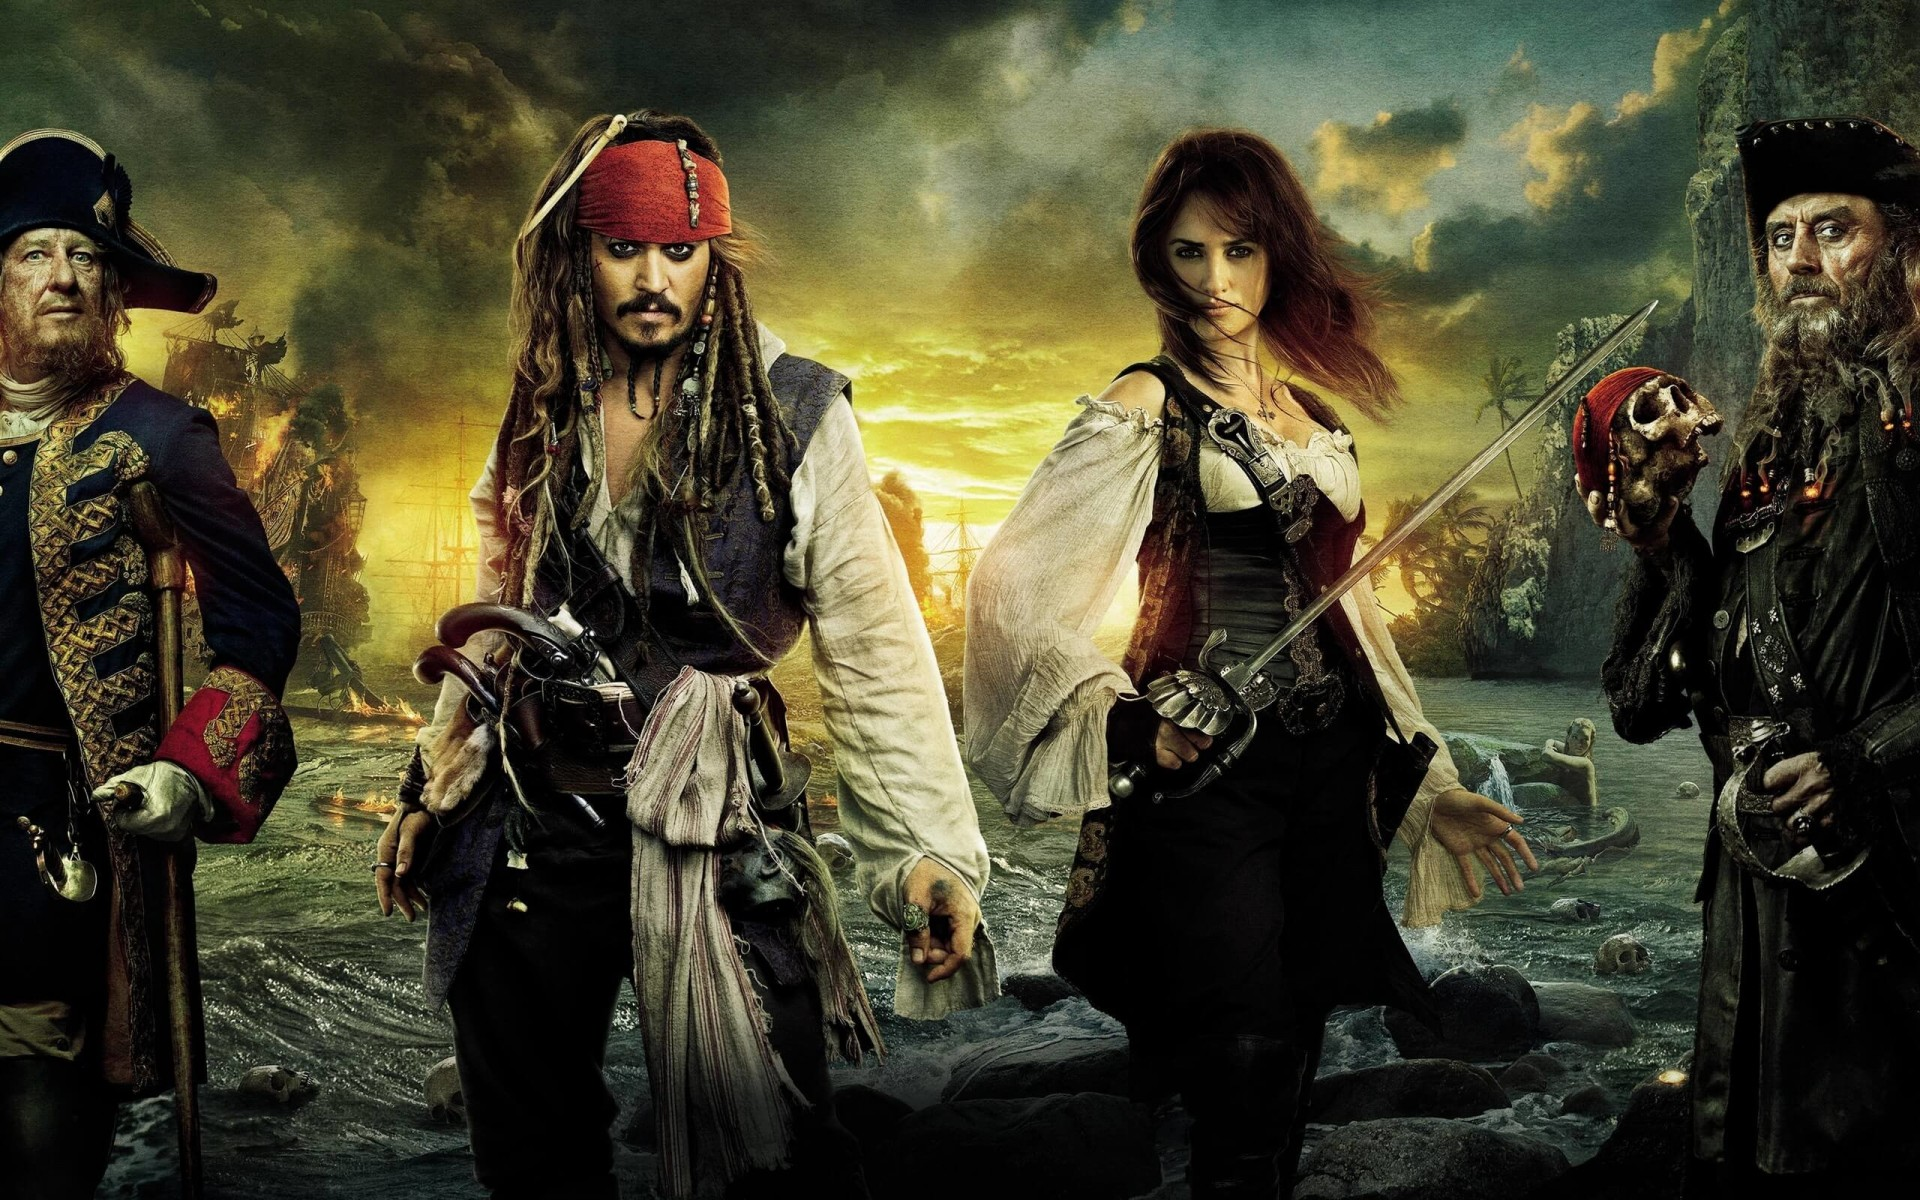 Pirates of the Caribbean: On Stranger Tides Characters Wallpaper for Desktop 1920x1200